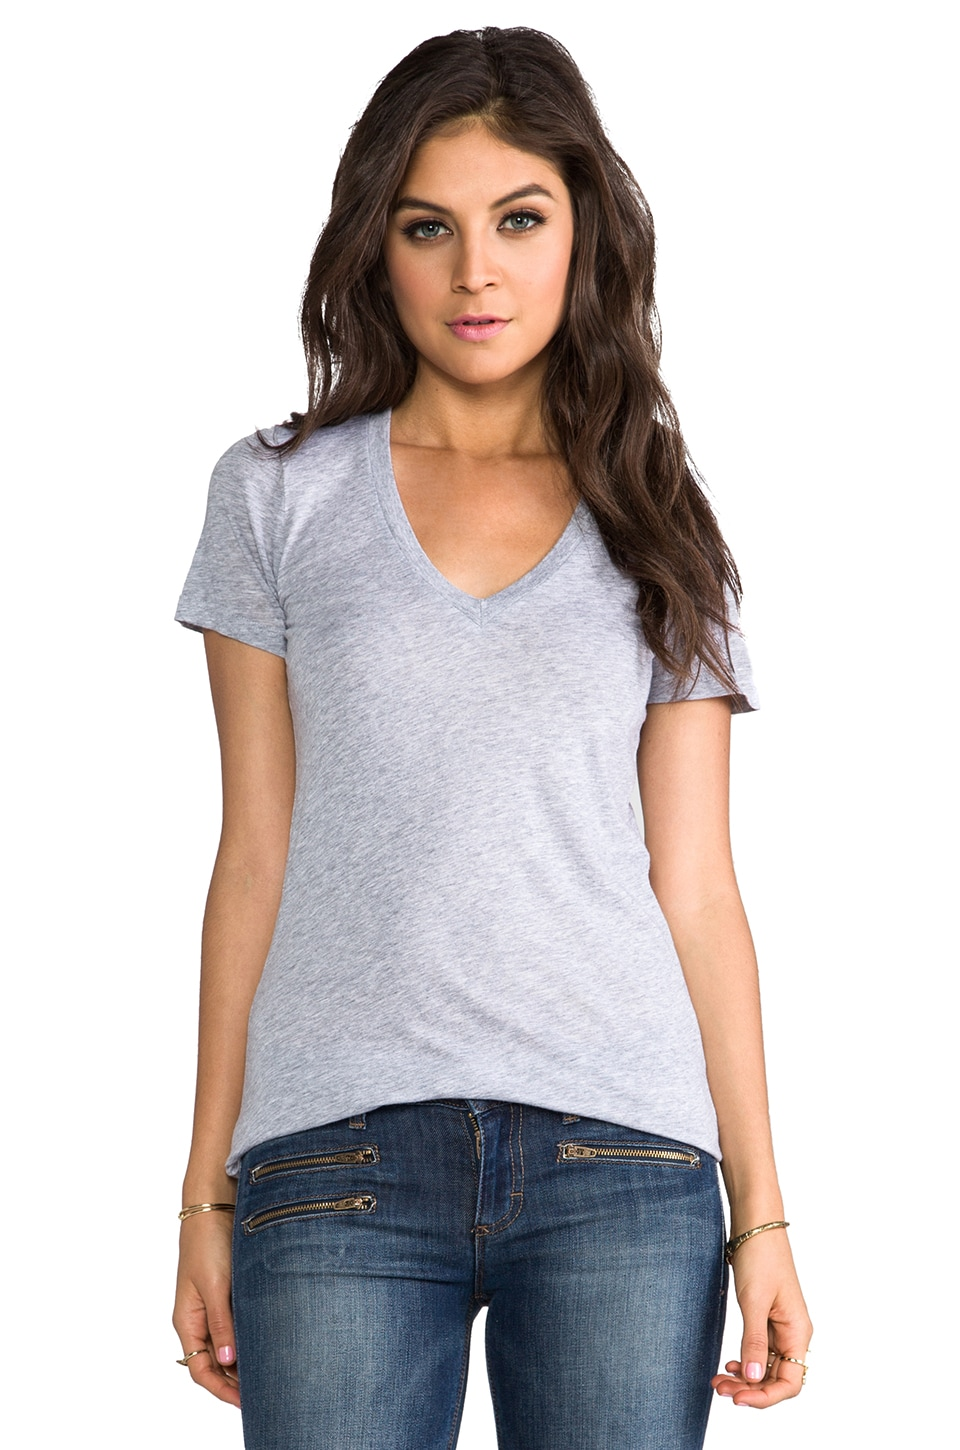 Splendid Very Light Jersey V Neck Top in Heather Grey